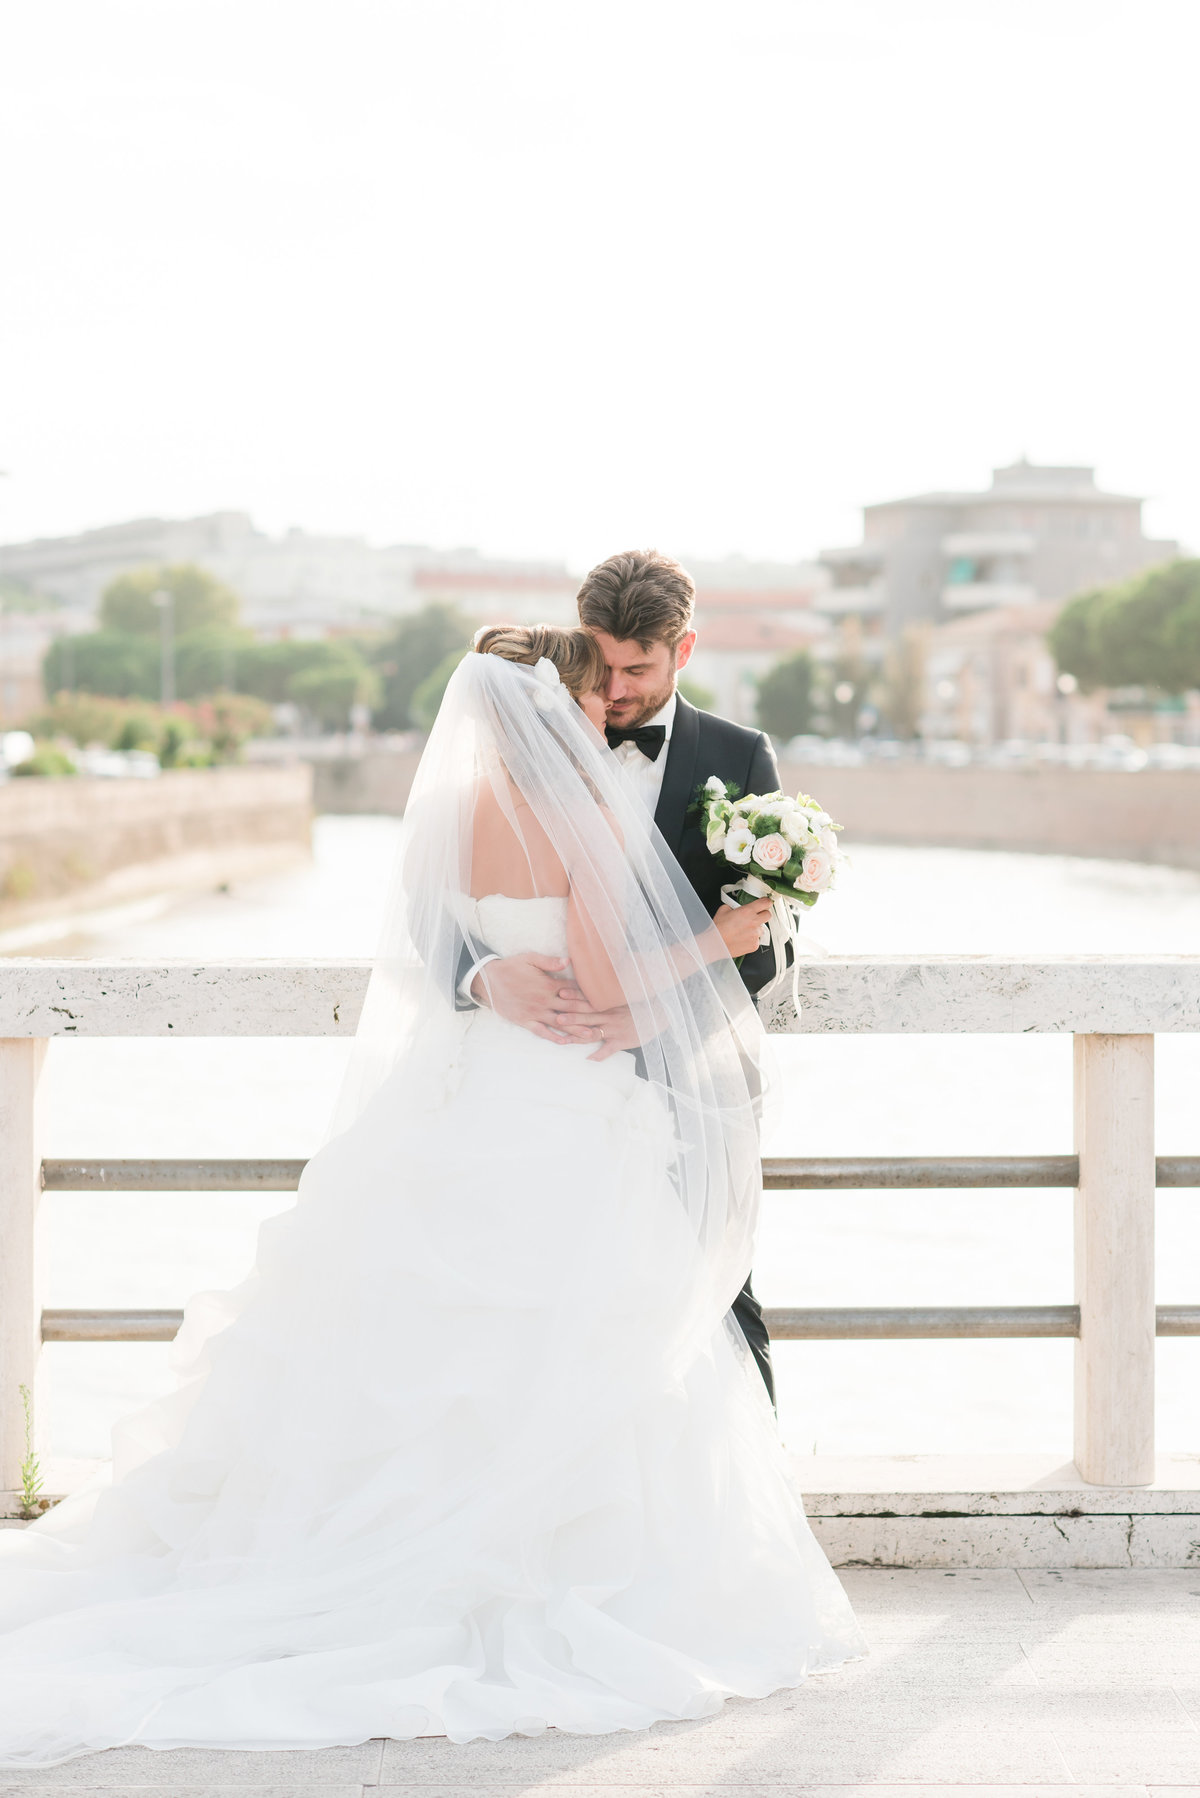 a bride wearing a strapless dress with cathedral length veil being held by her husband wearing black tie suit with bowtie on a bridge in downtown Sengillia Italy